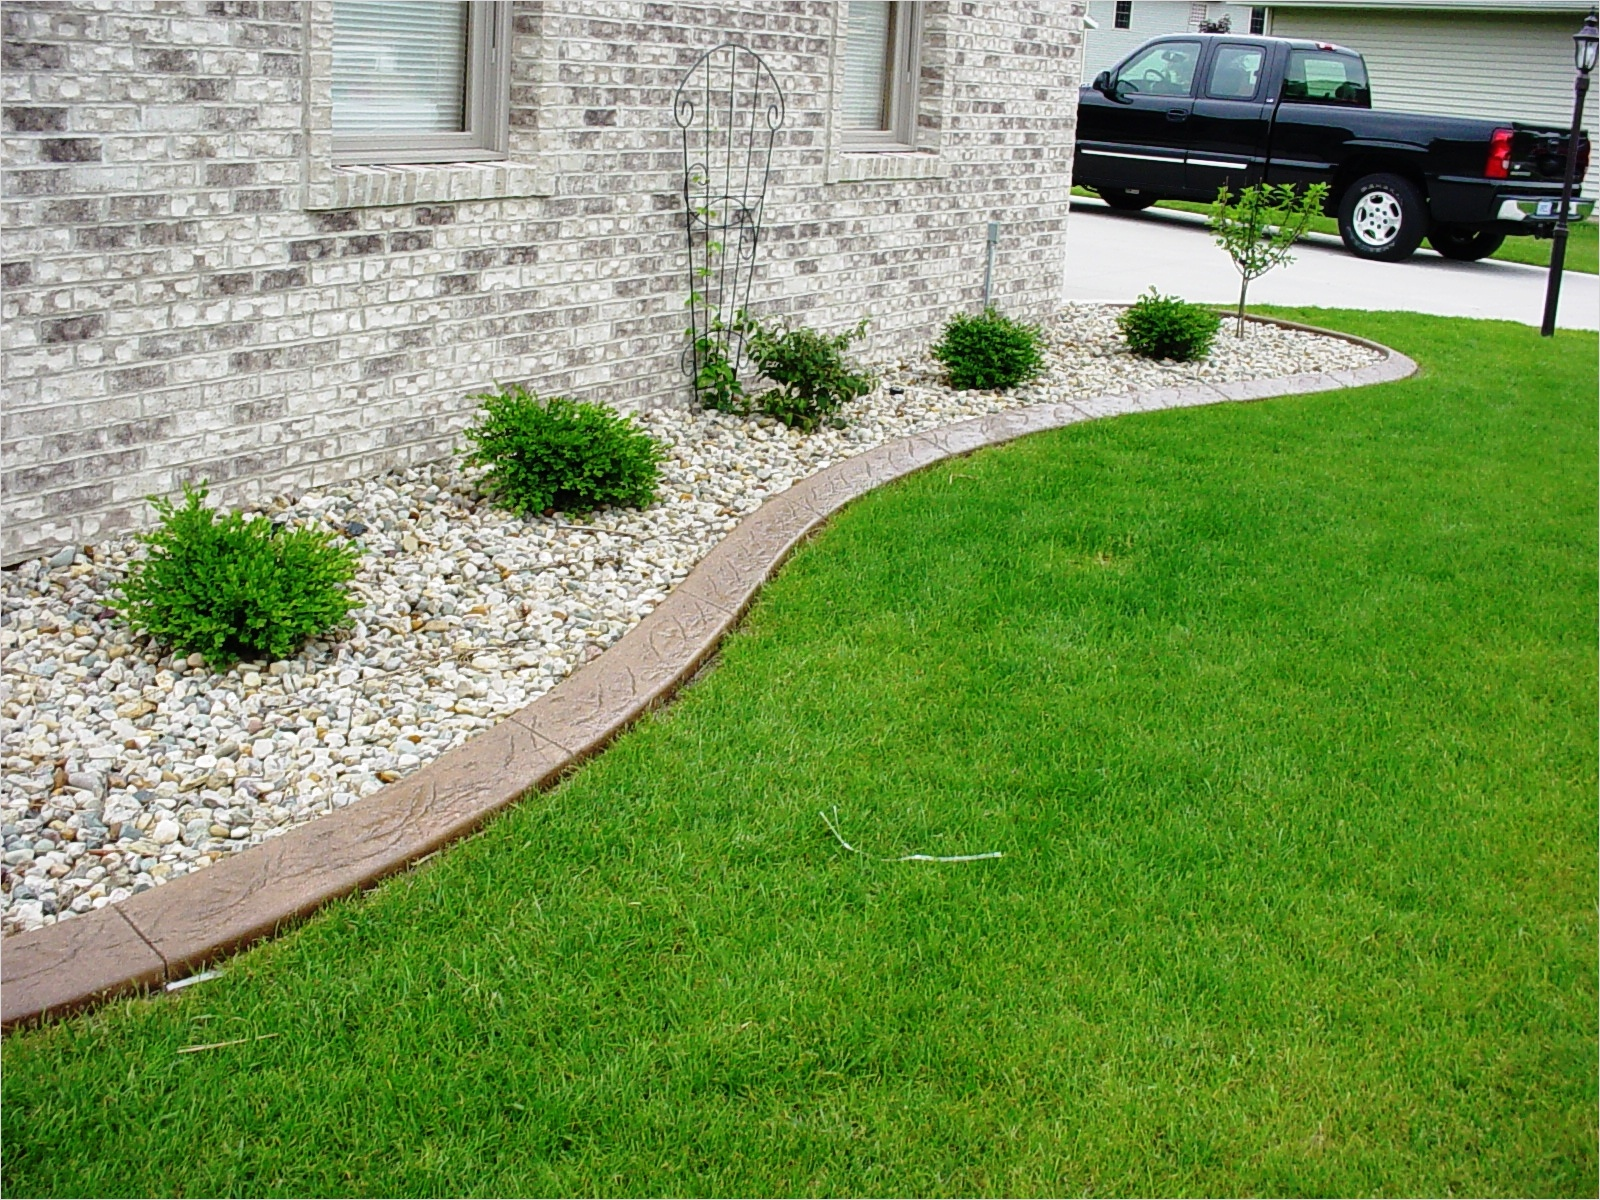 43 Perfect Gravel Landscaping Ideas 52 Gravel and Grass Landscaping Ideas 9